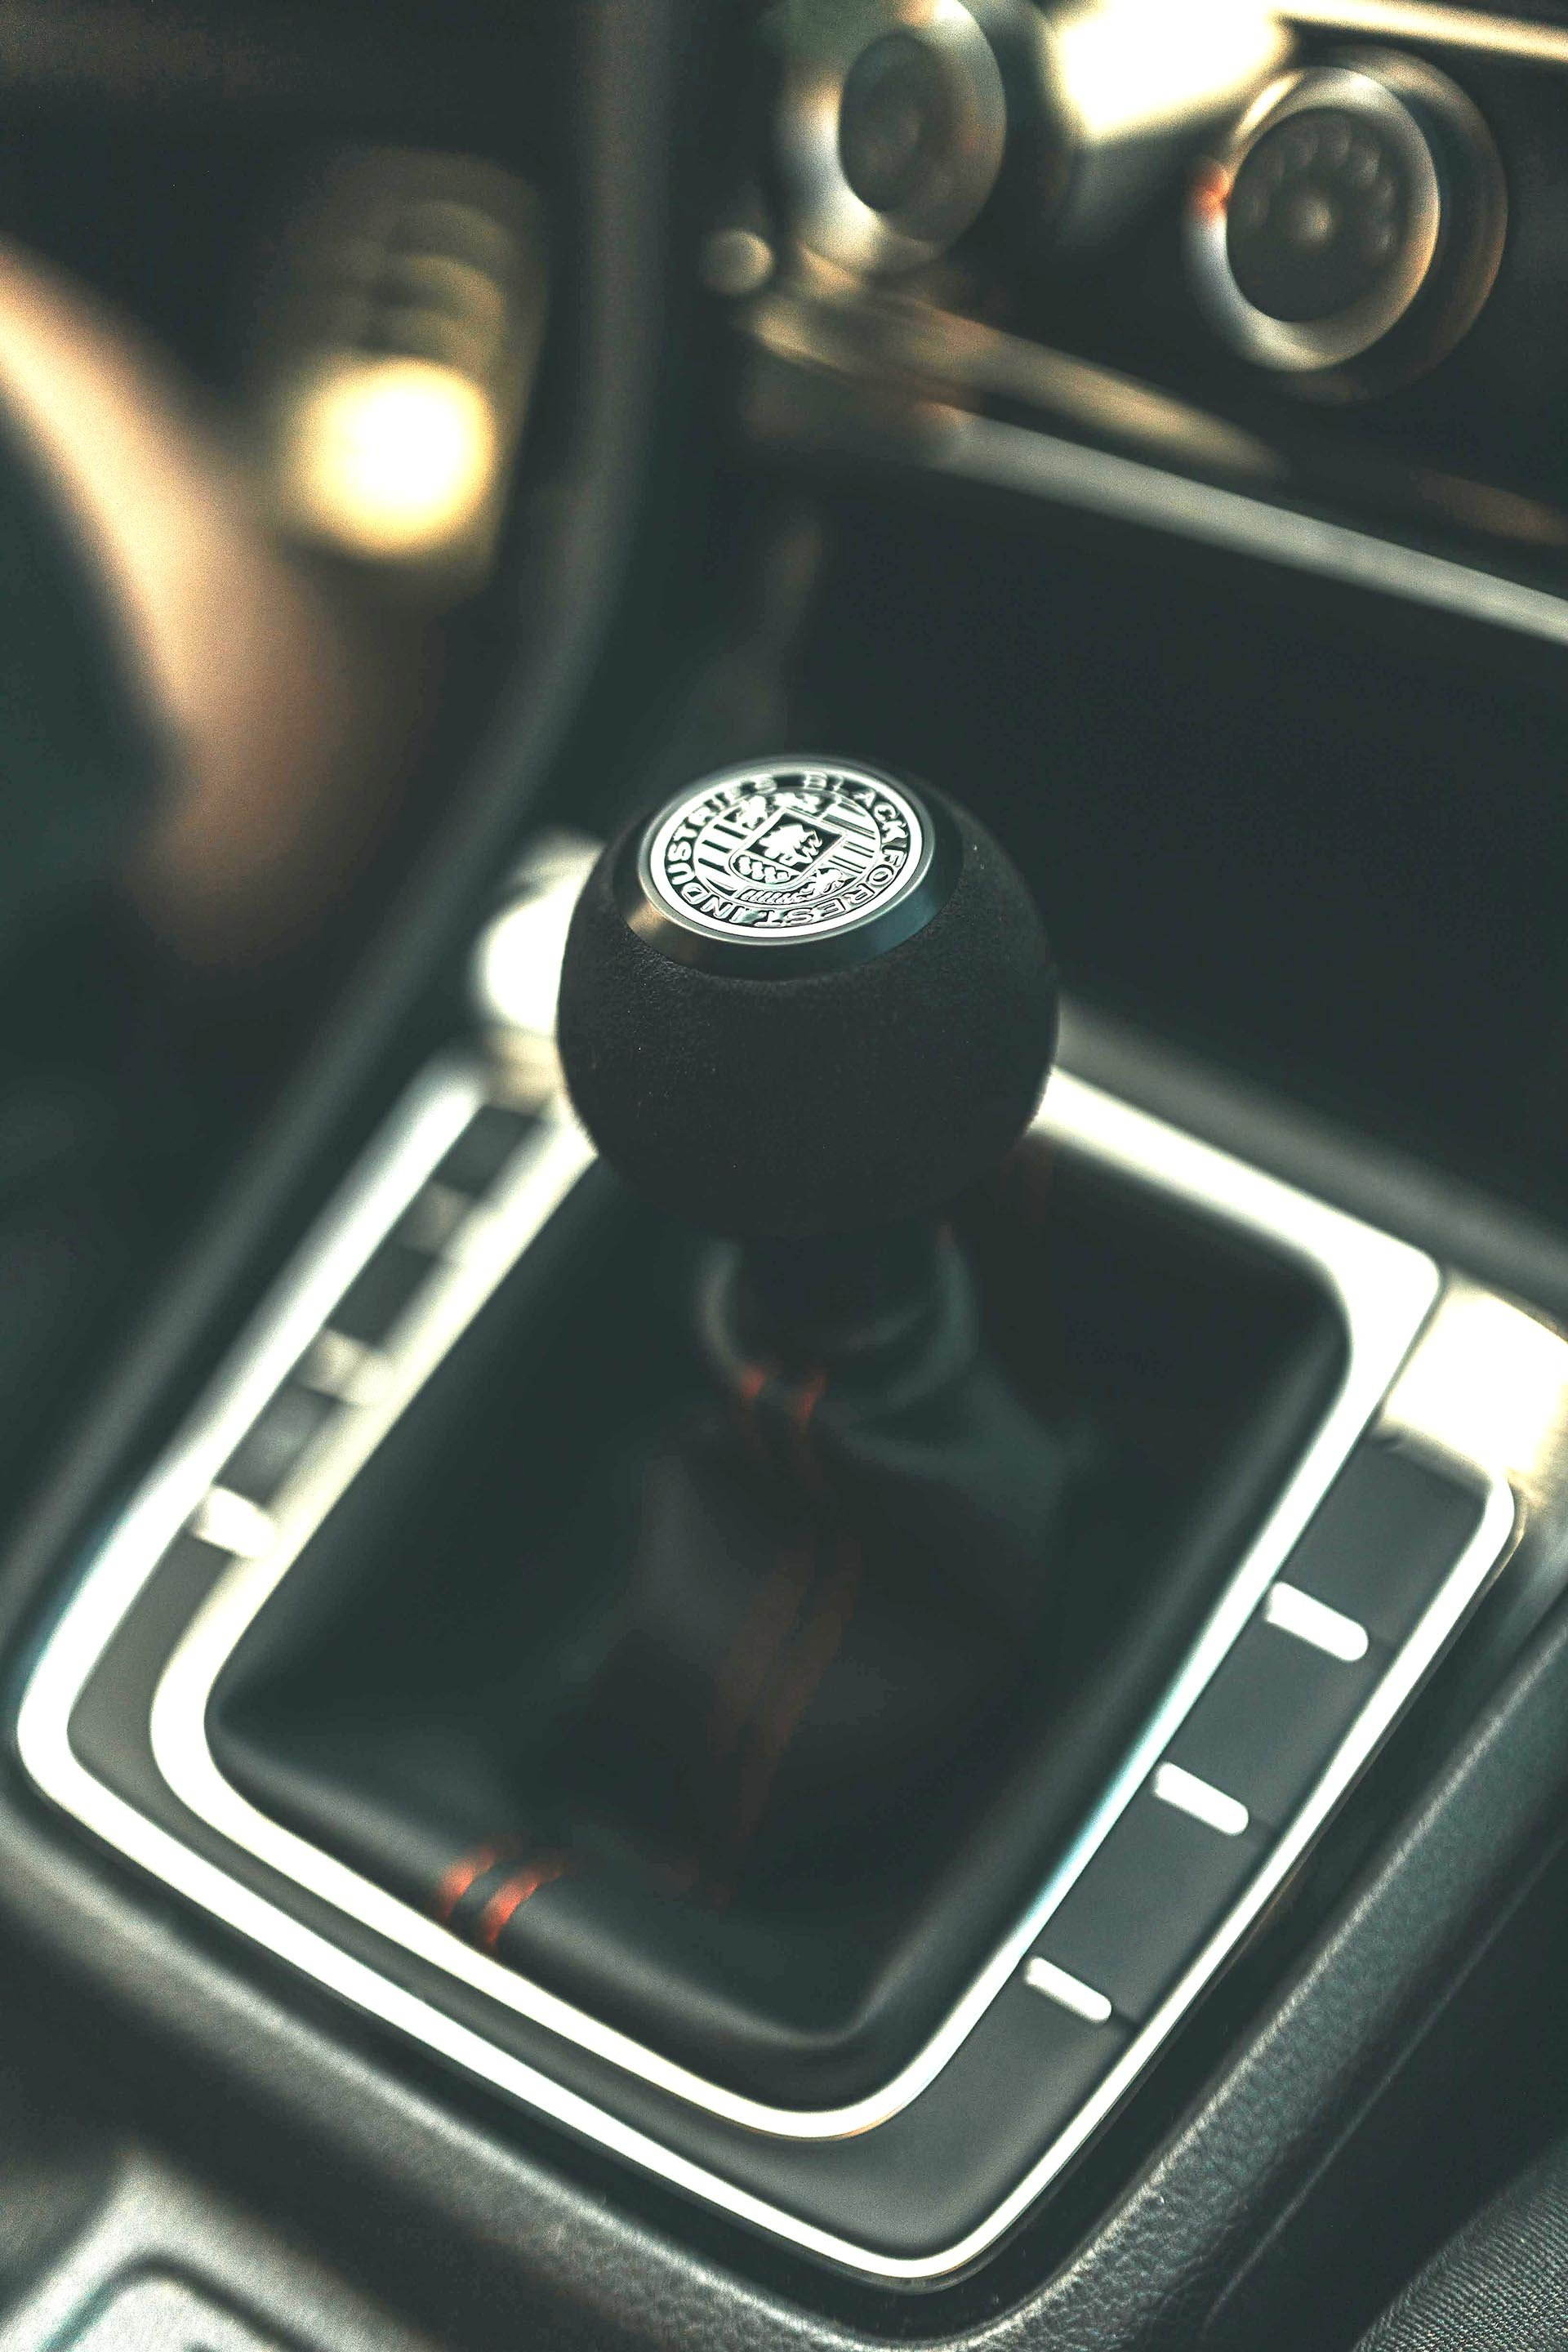 21_Mk7 GTI manual shifter with black forest industries shift knob